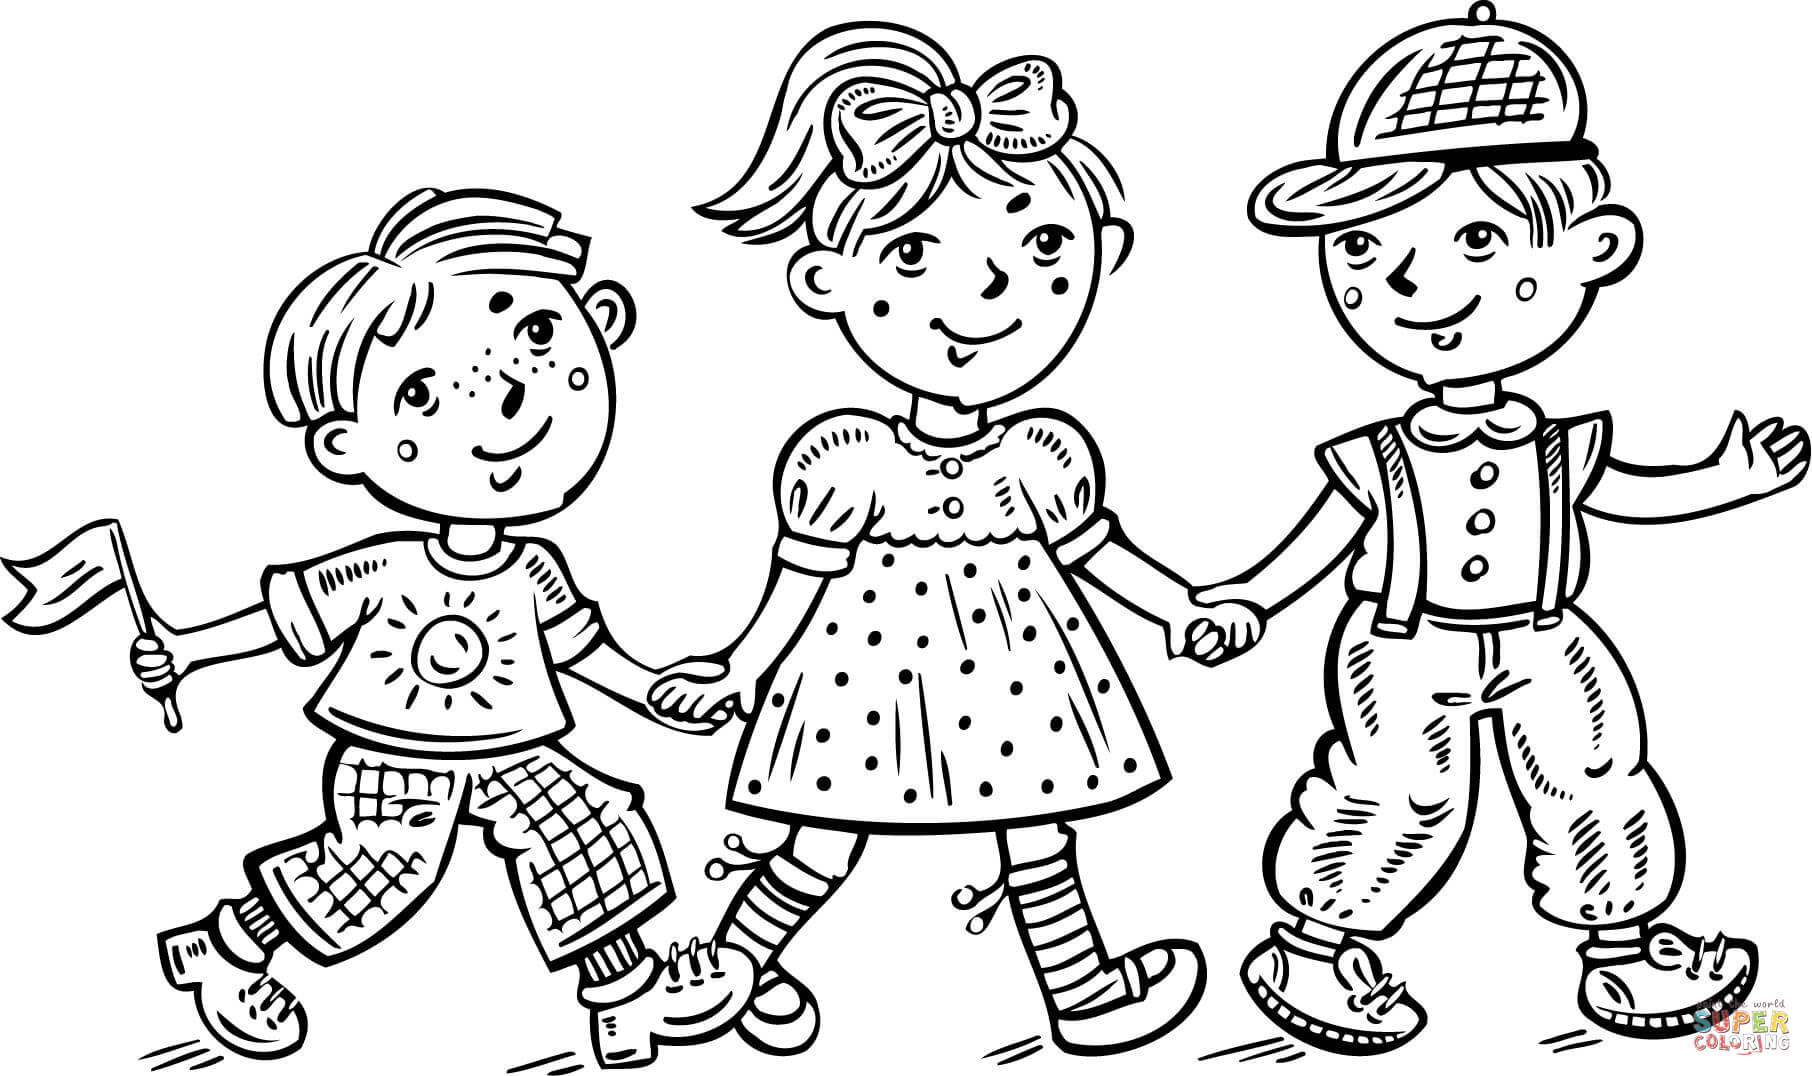 Coloring Sheets For Girls And Boys  Girl And Boy Coloring Page AZ Coloring Pages